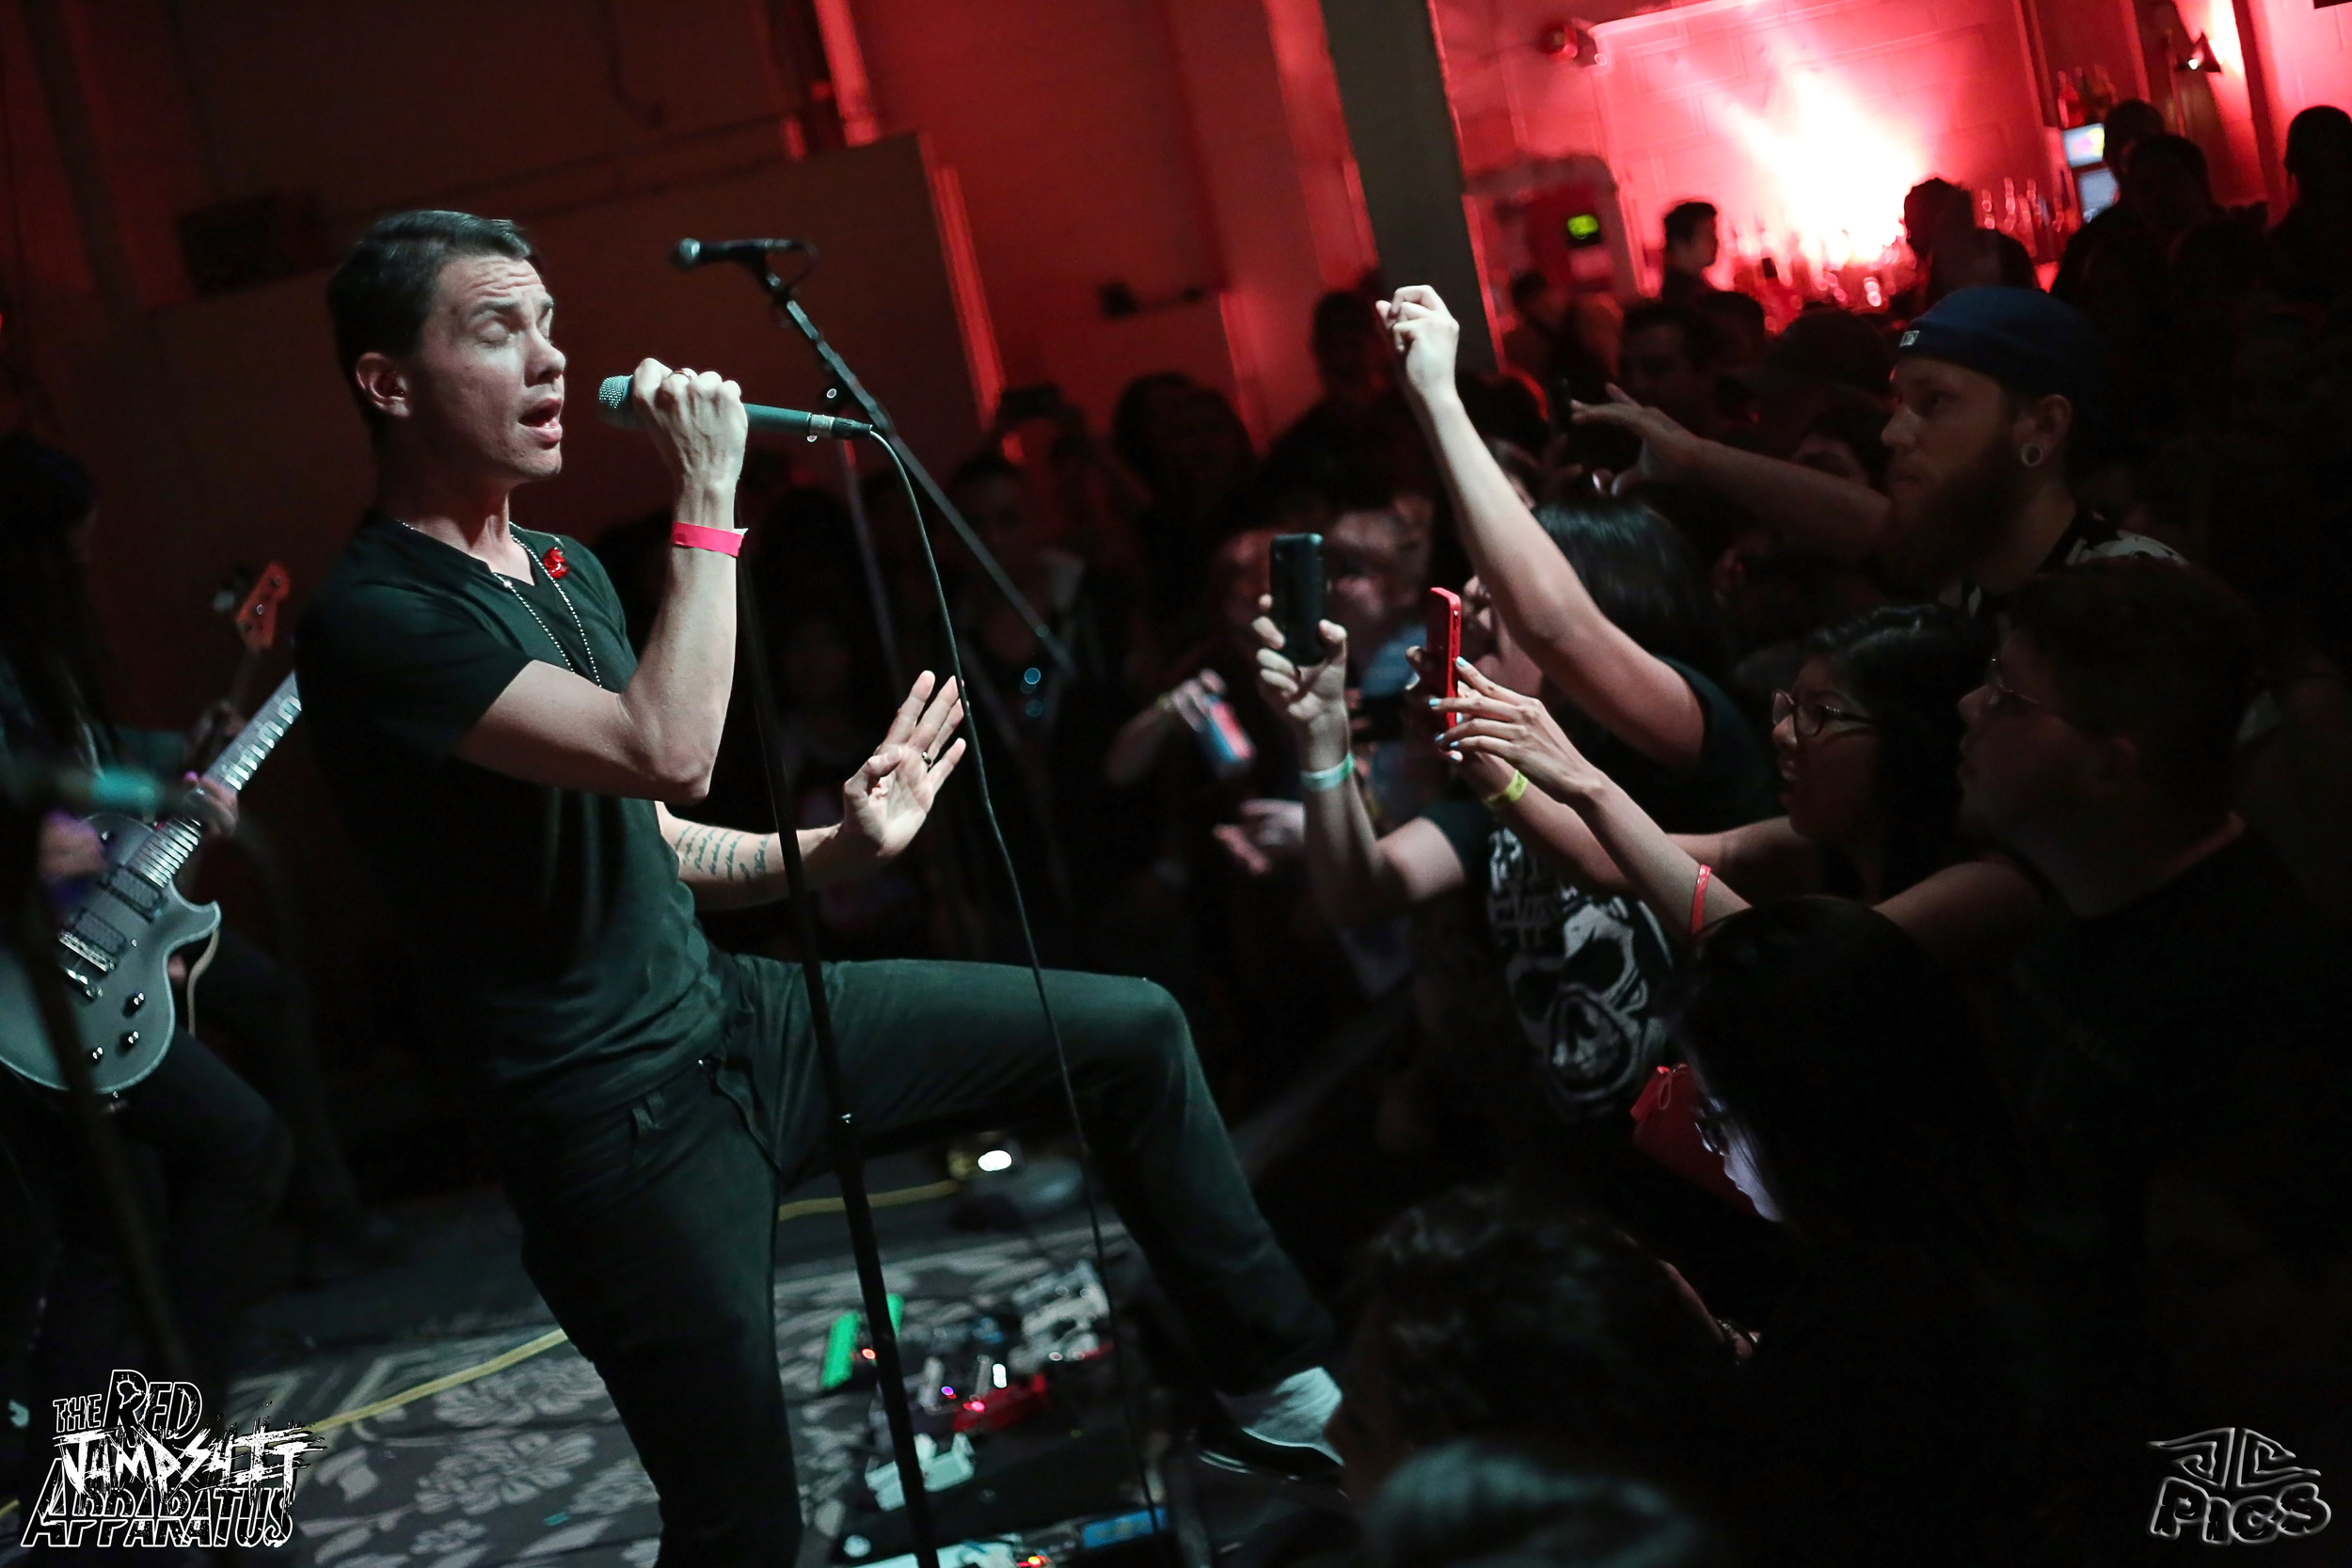 The Red Jumpsuit Apparatus 9B4A3692.JPG